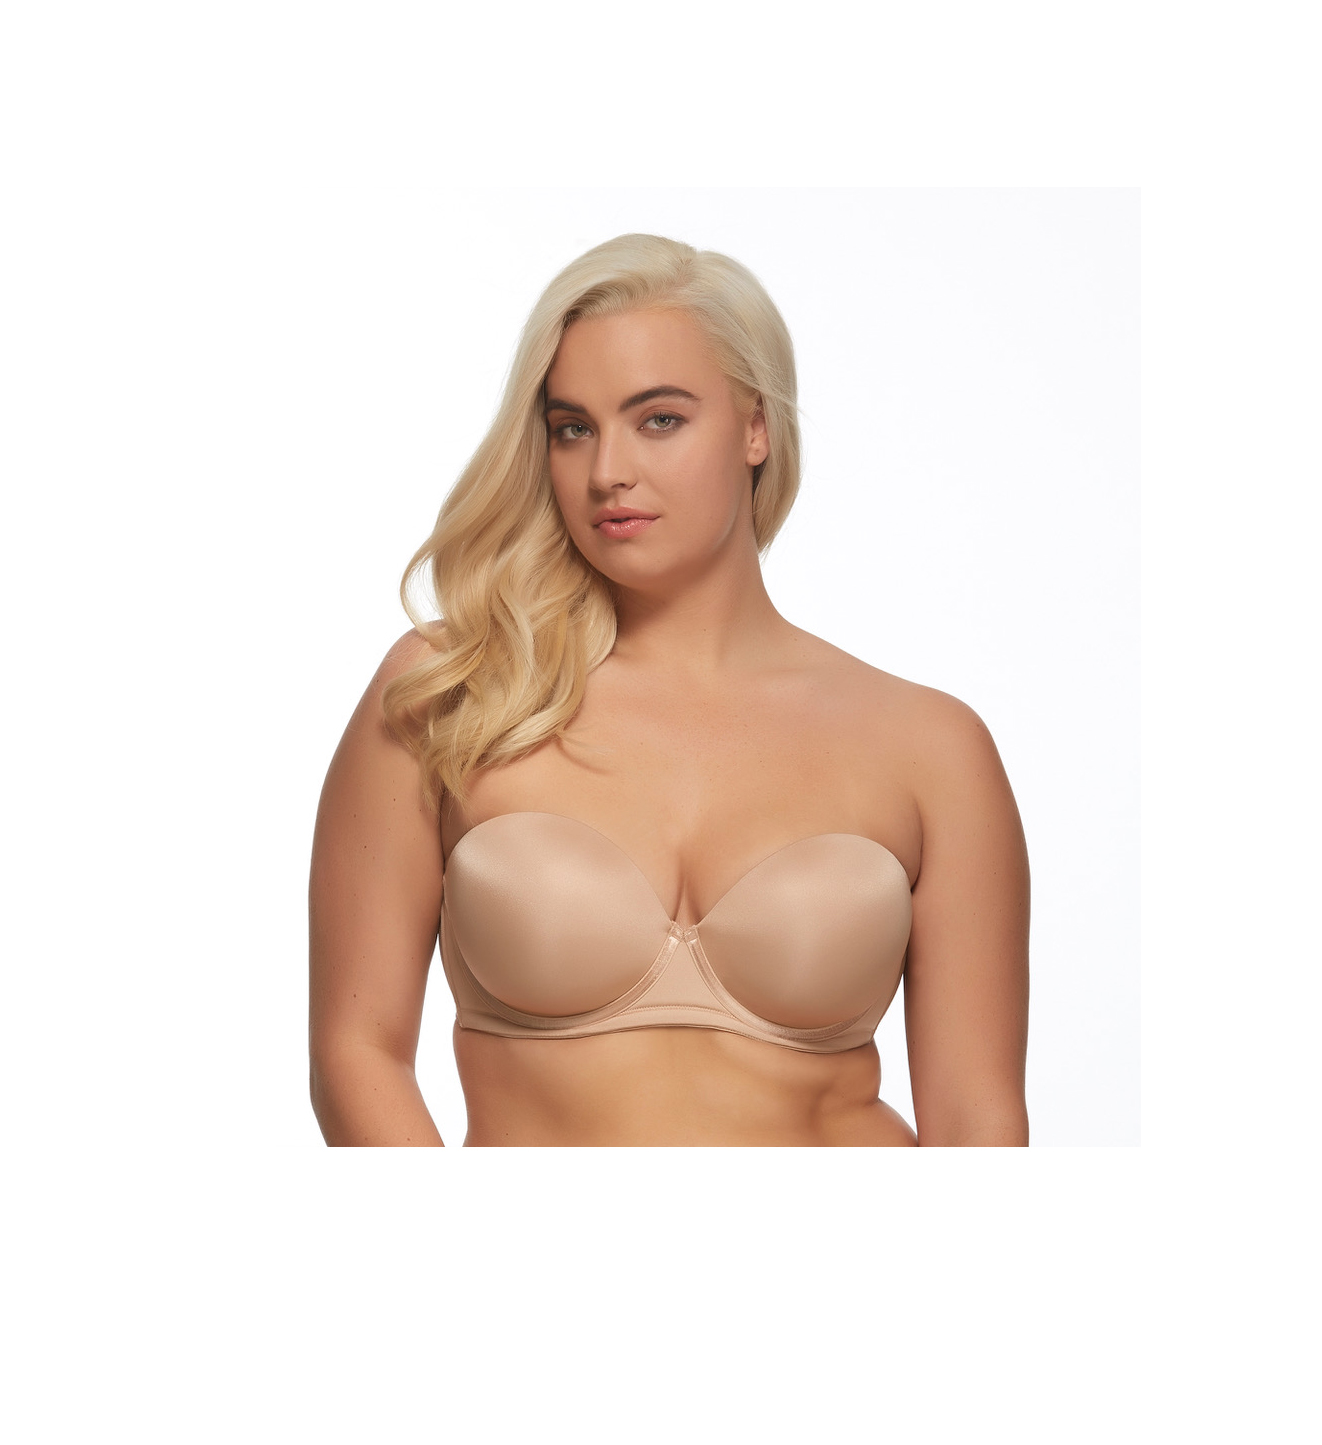 A Strapless or Convertible Bra